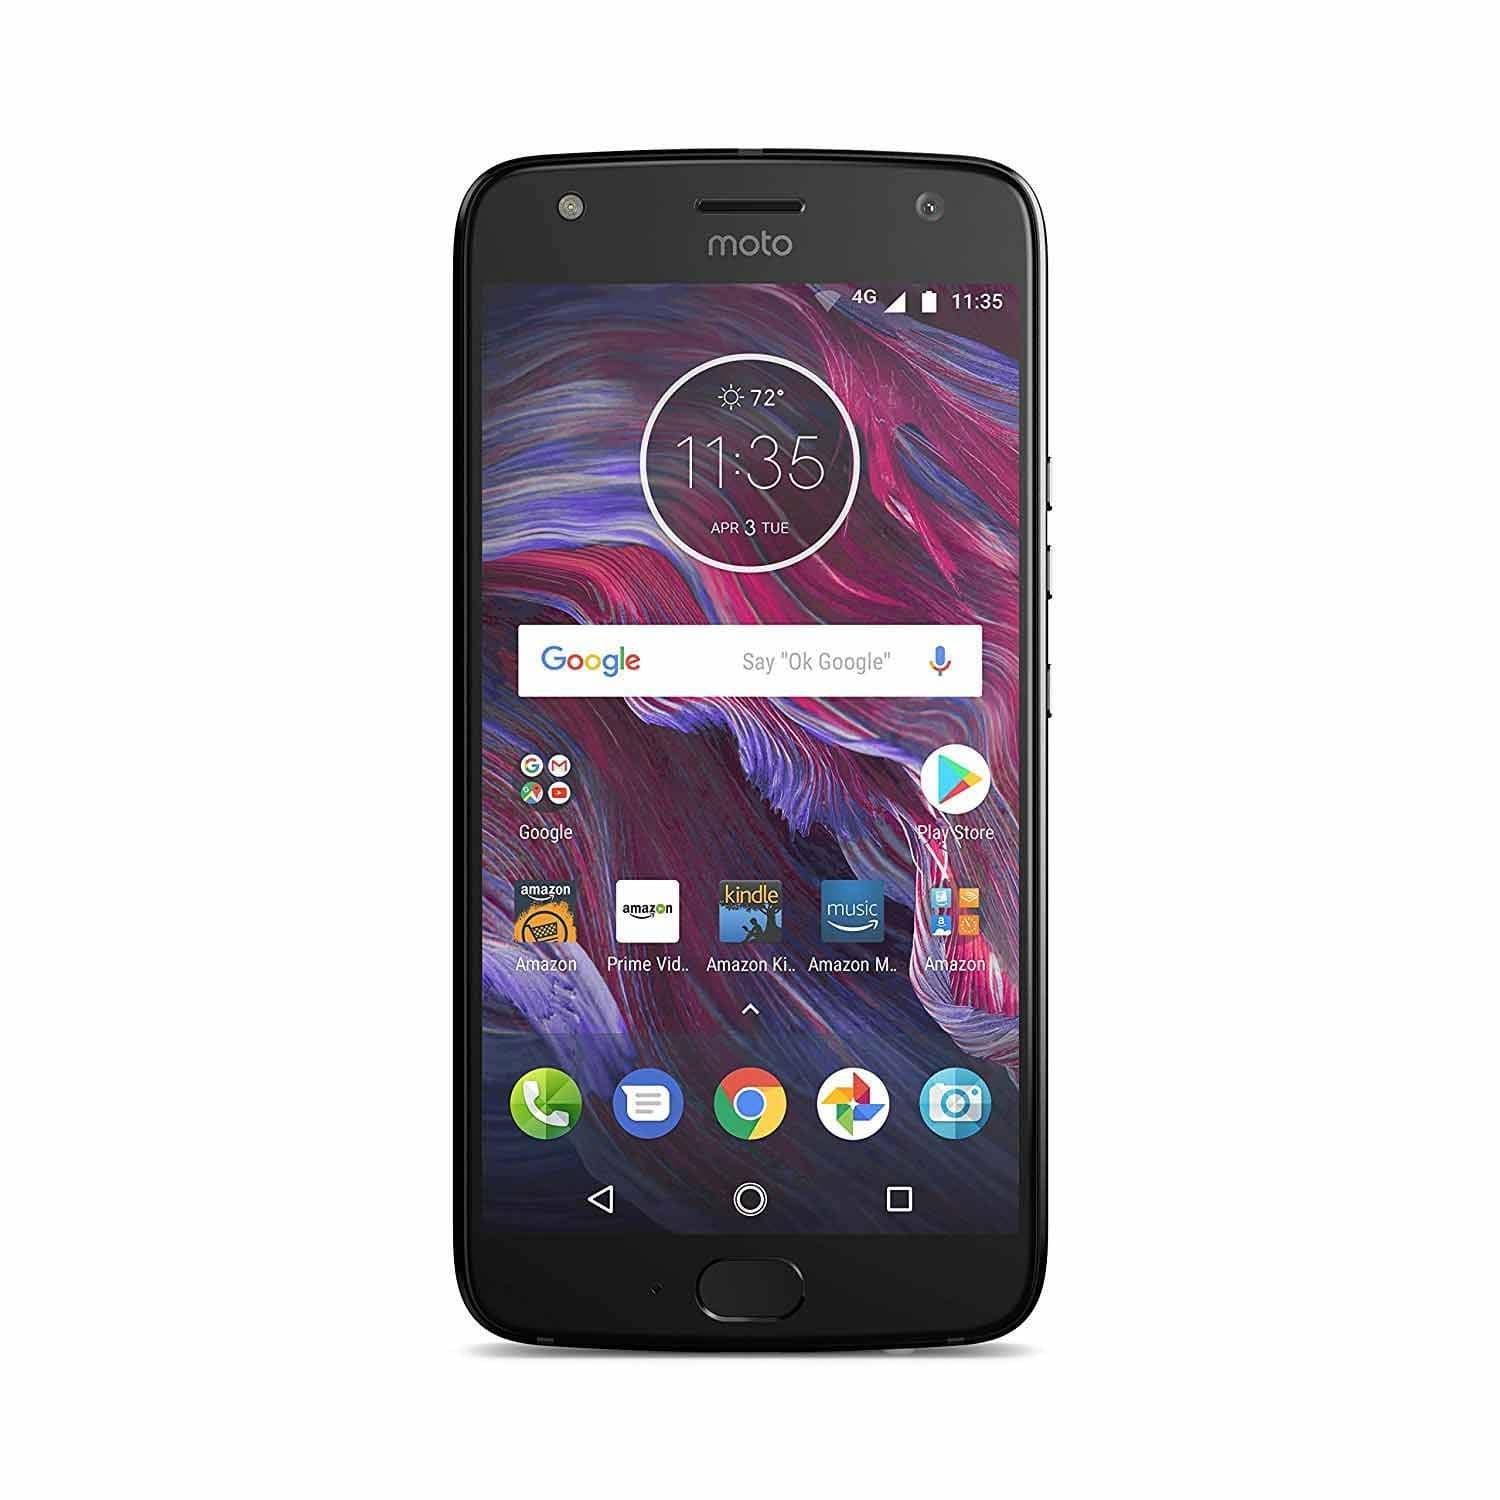 32GB Moto X (4th Gen) Unlocked Smartphone w/ Hands Free Amazon Alexa (Black or Blue) $249.99 + Free Shipping for Amazon Prime Members